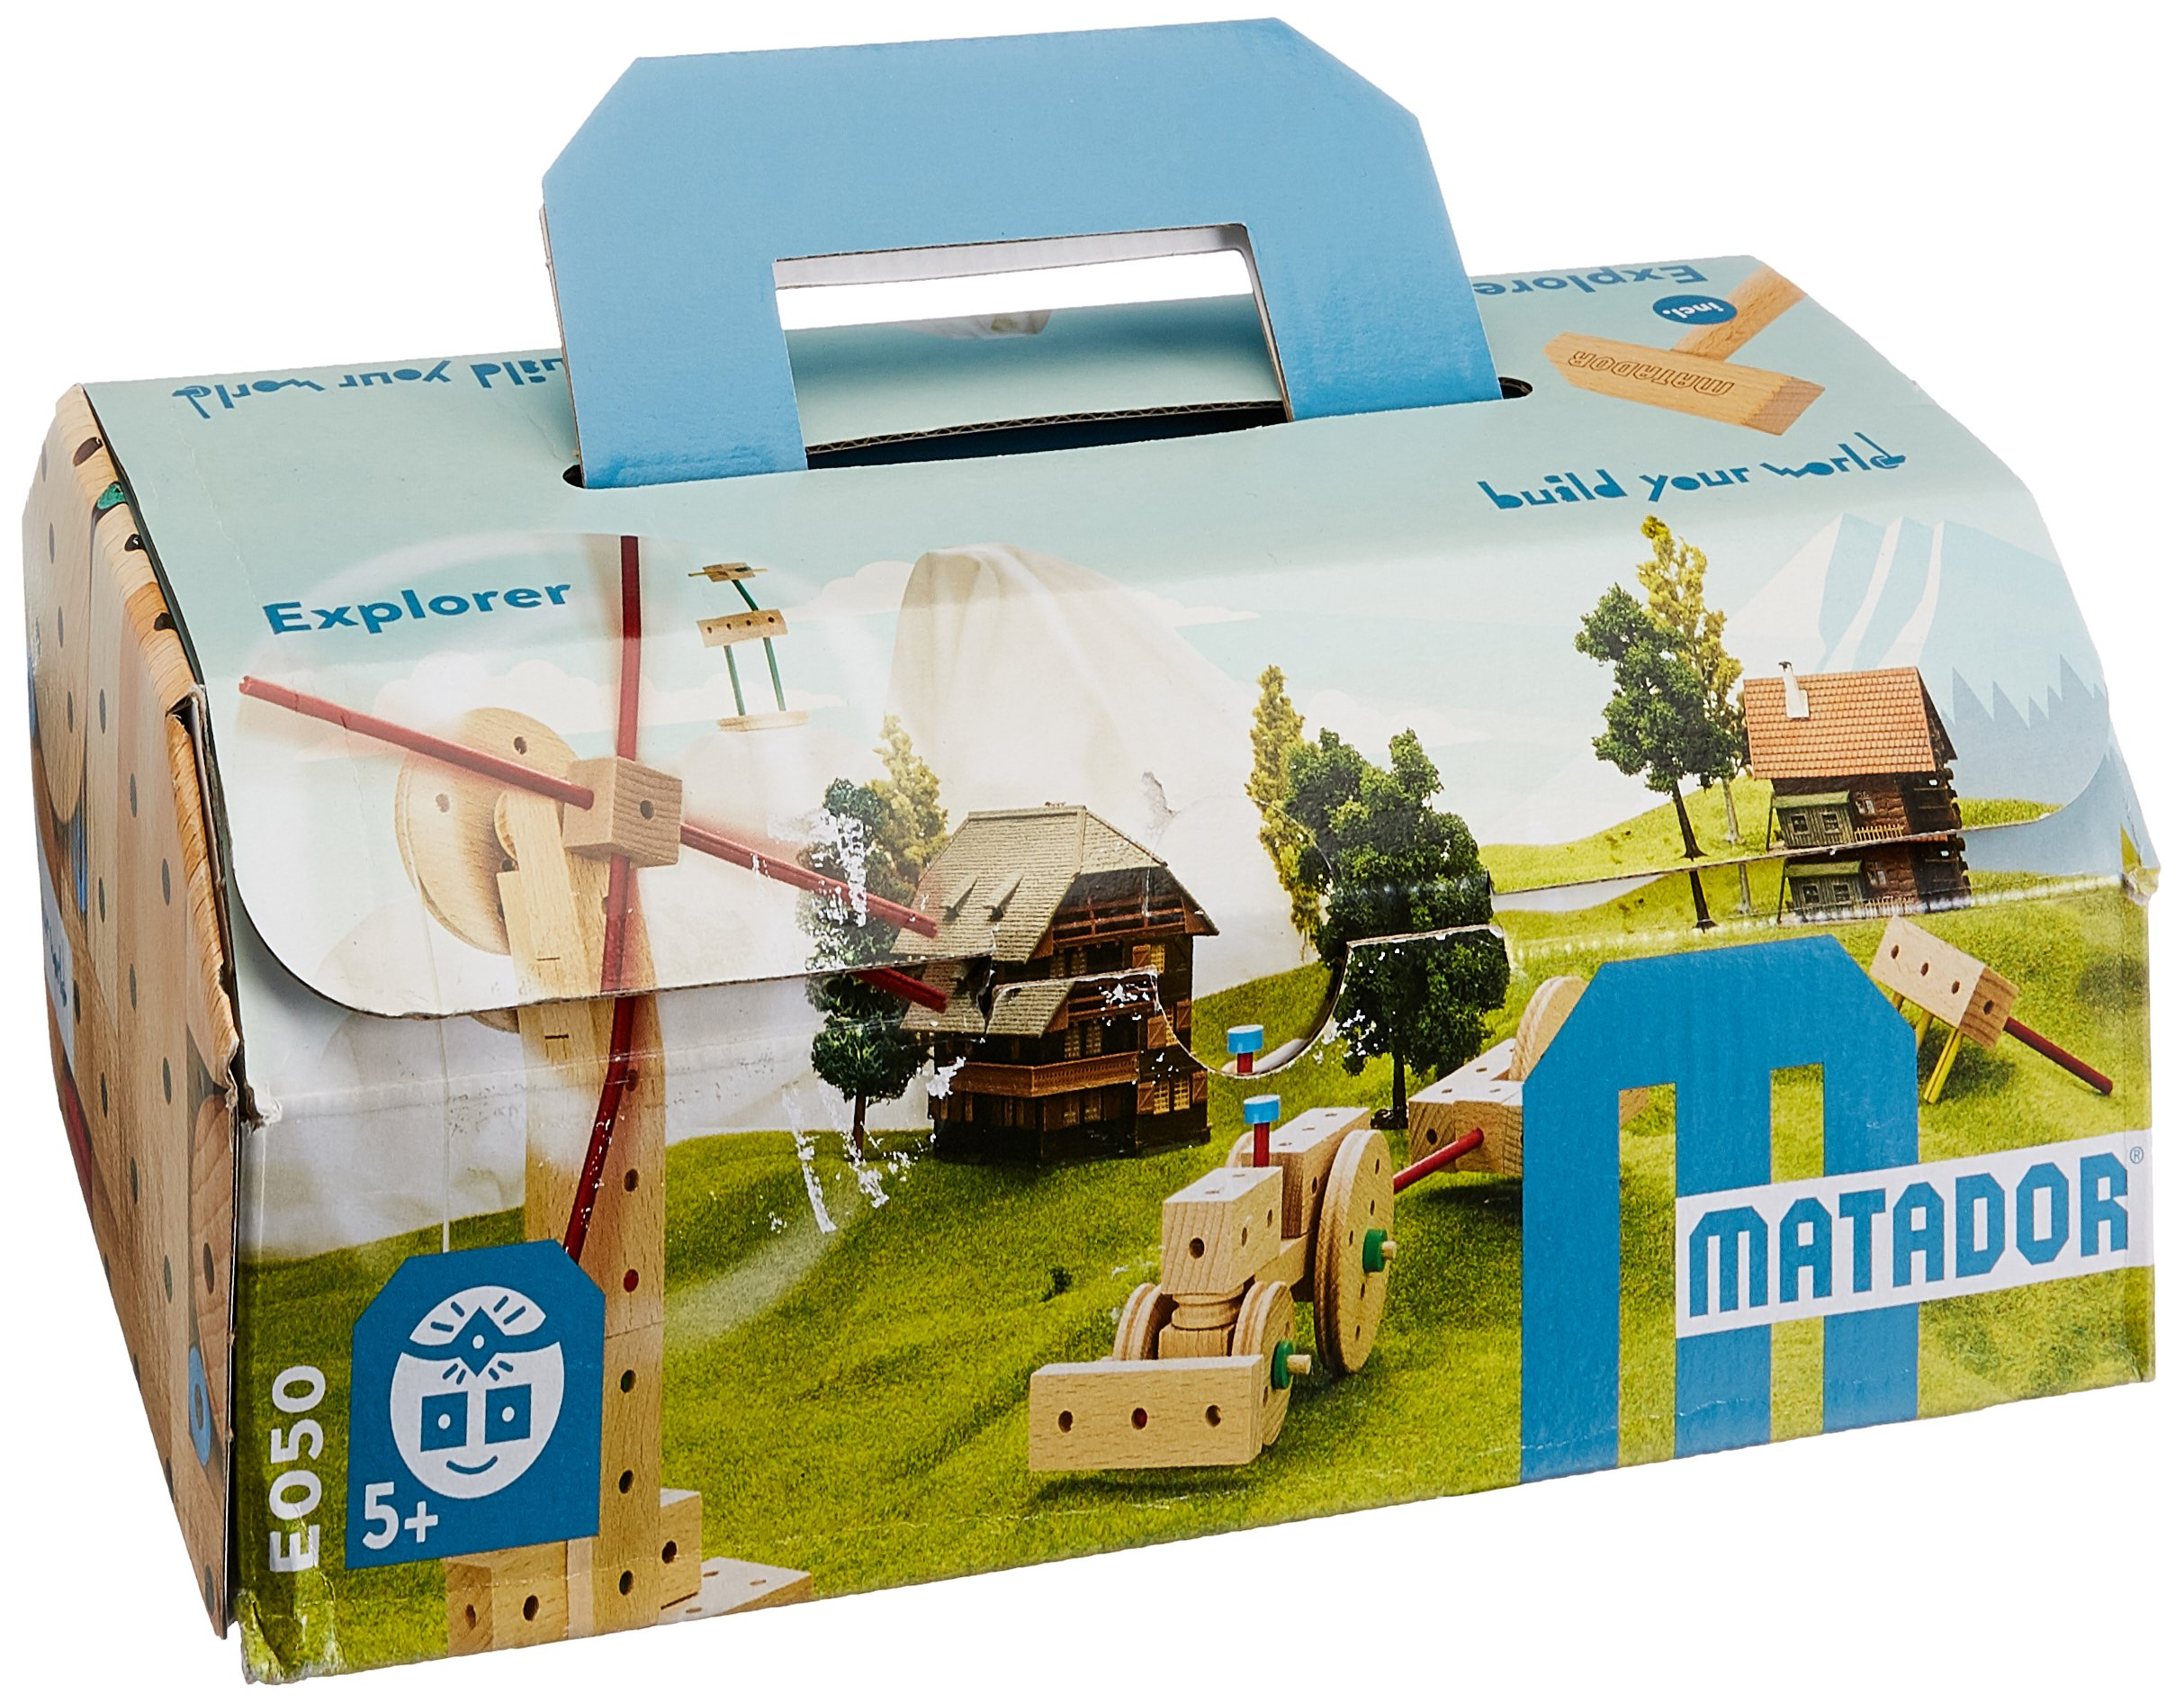 KSM Toys Matador Classic 0 - 99 Piece 3-Dimensional Wooden Building Set for Ages 5 + (Made in Austria)